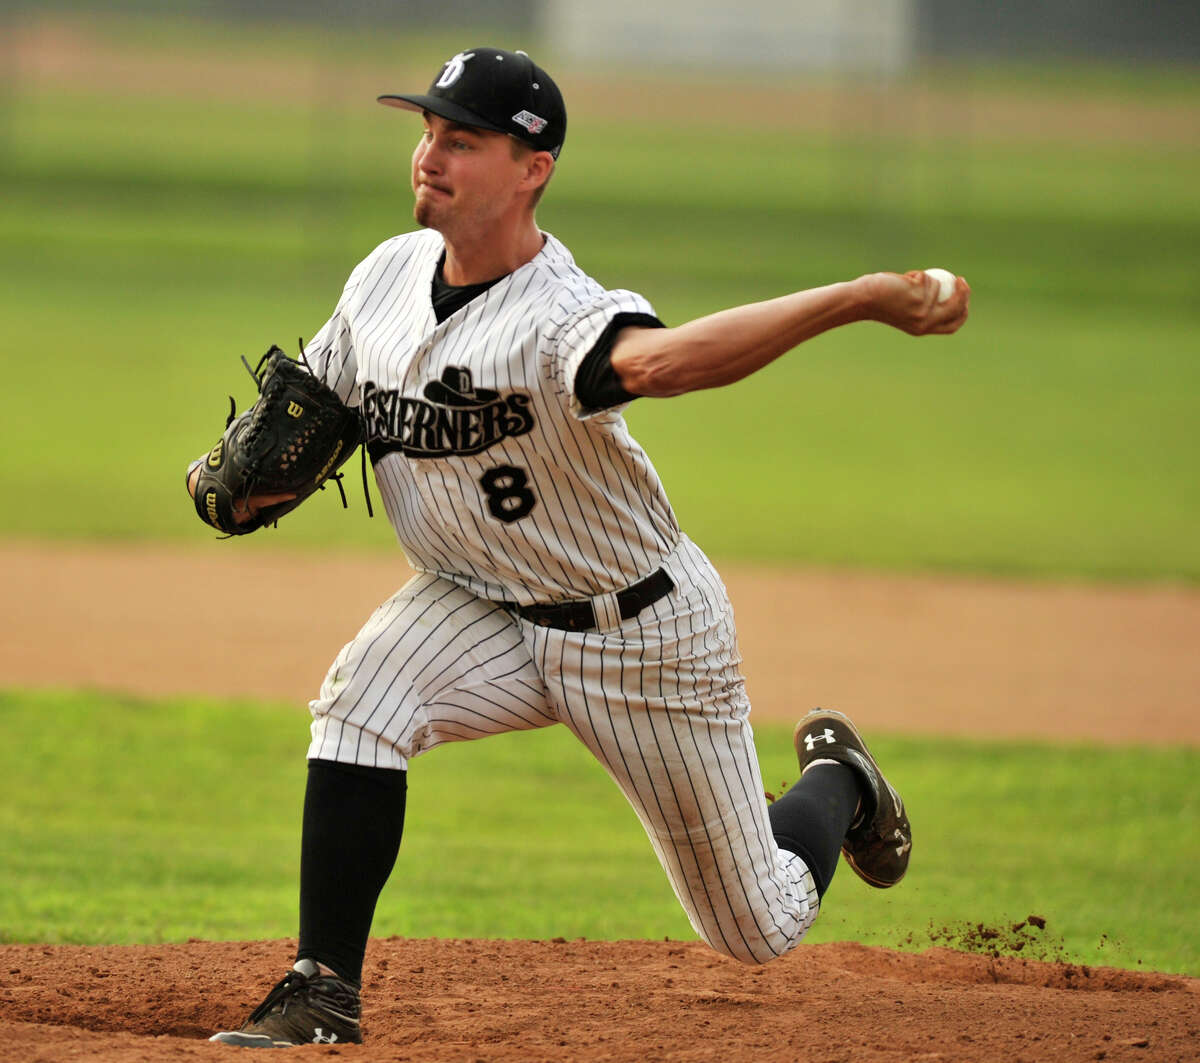 Danbury's Ben Brewster pitches during game 2 of their Western Division playoff game against Keene at Rogers Park in Danbury on Wednesday, Aug. 8, 2012. Danbury won, 12-11, advancing to the finals against the Newport Gulls.